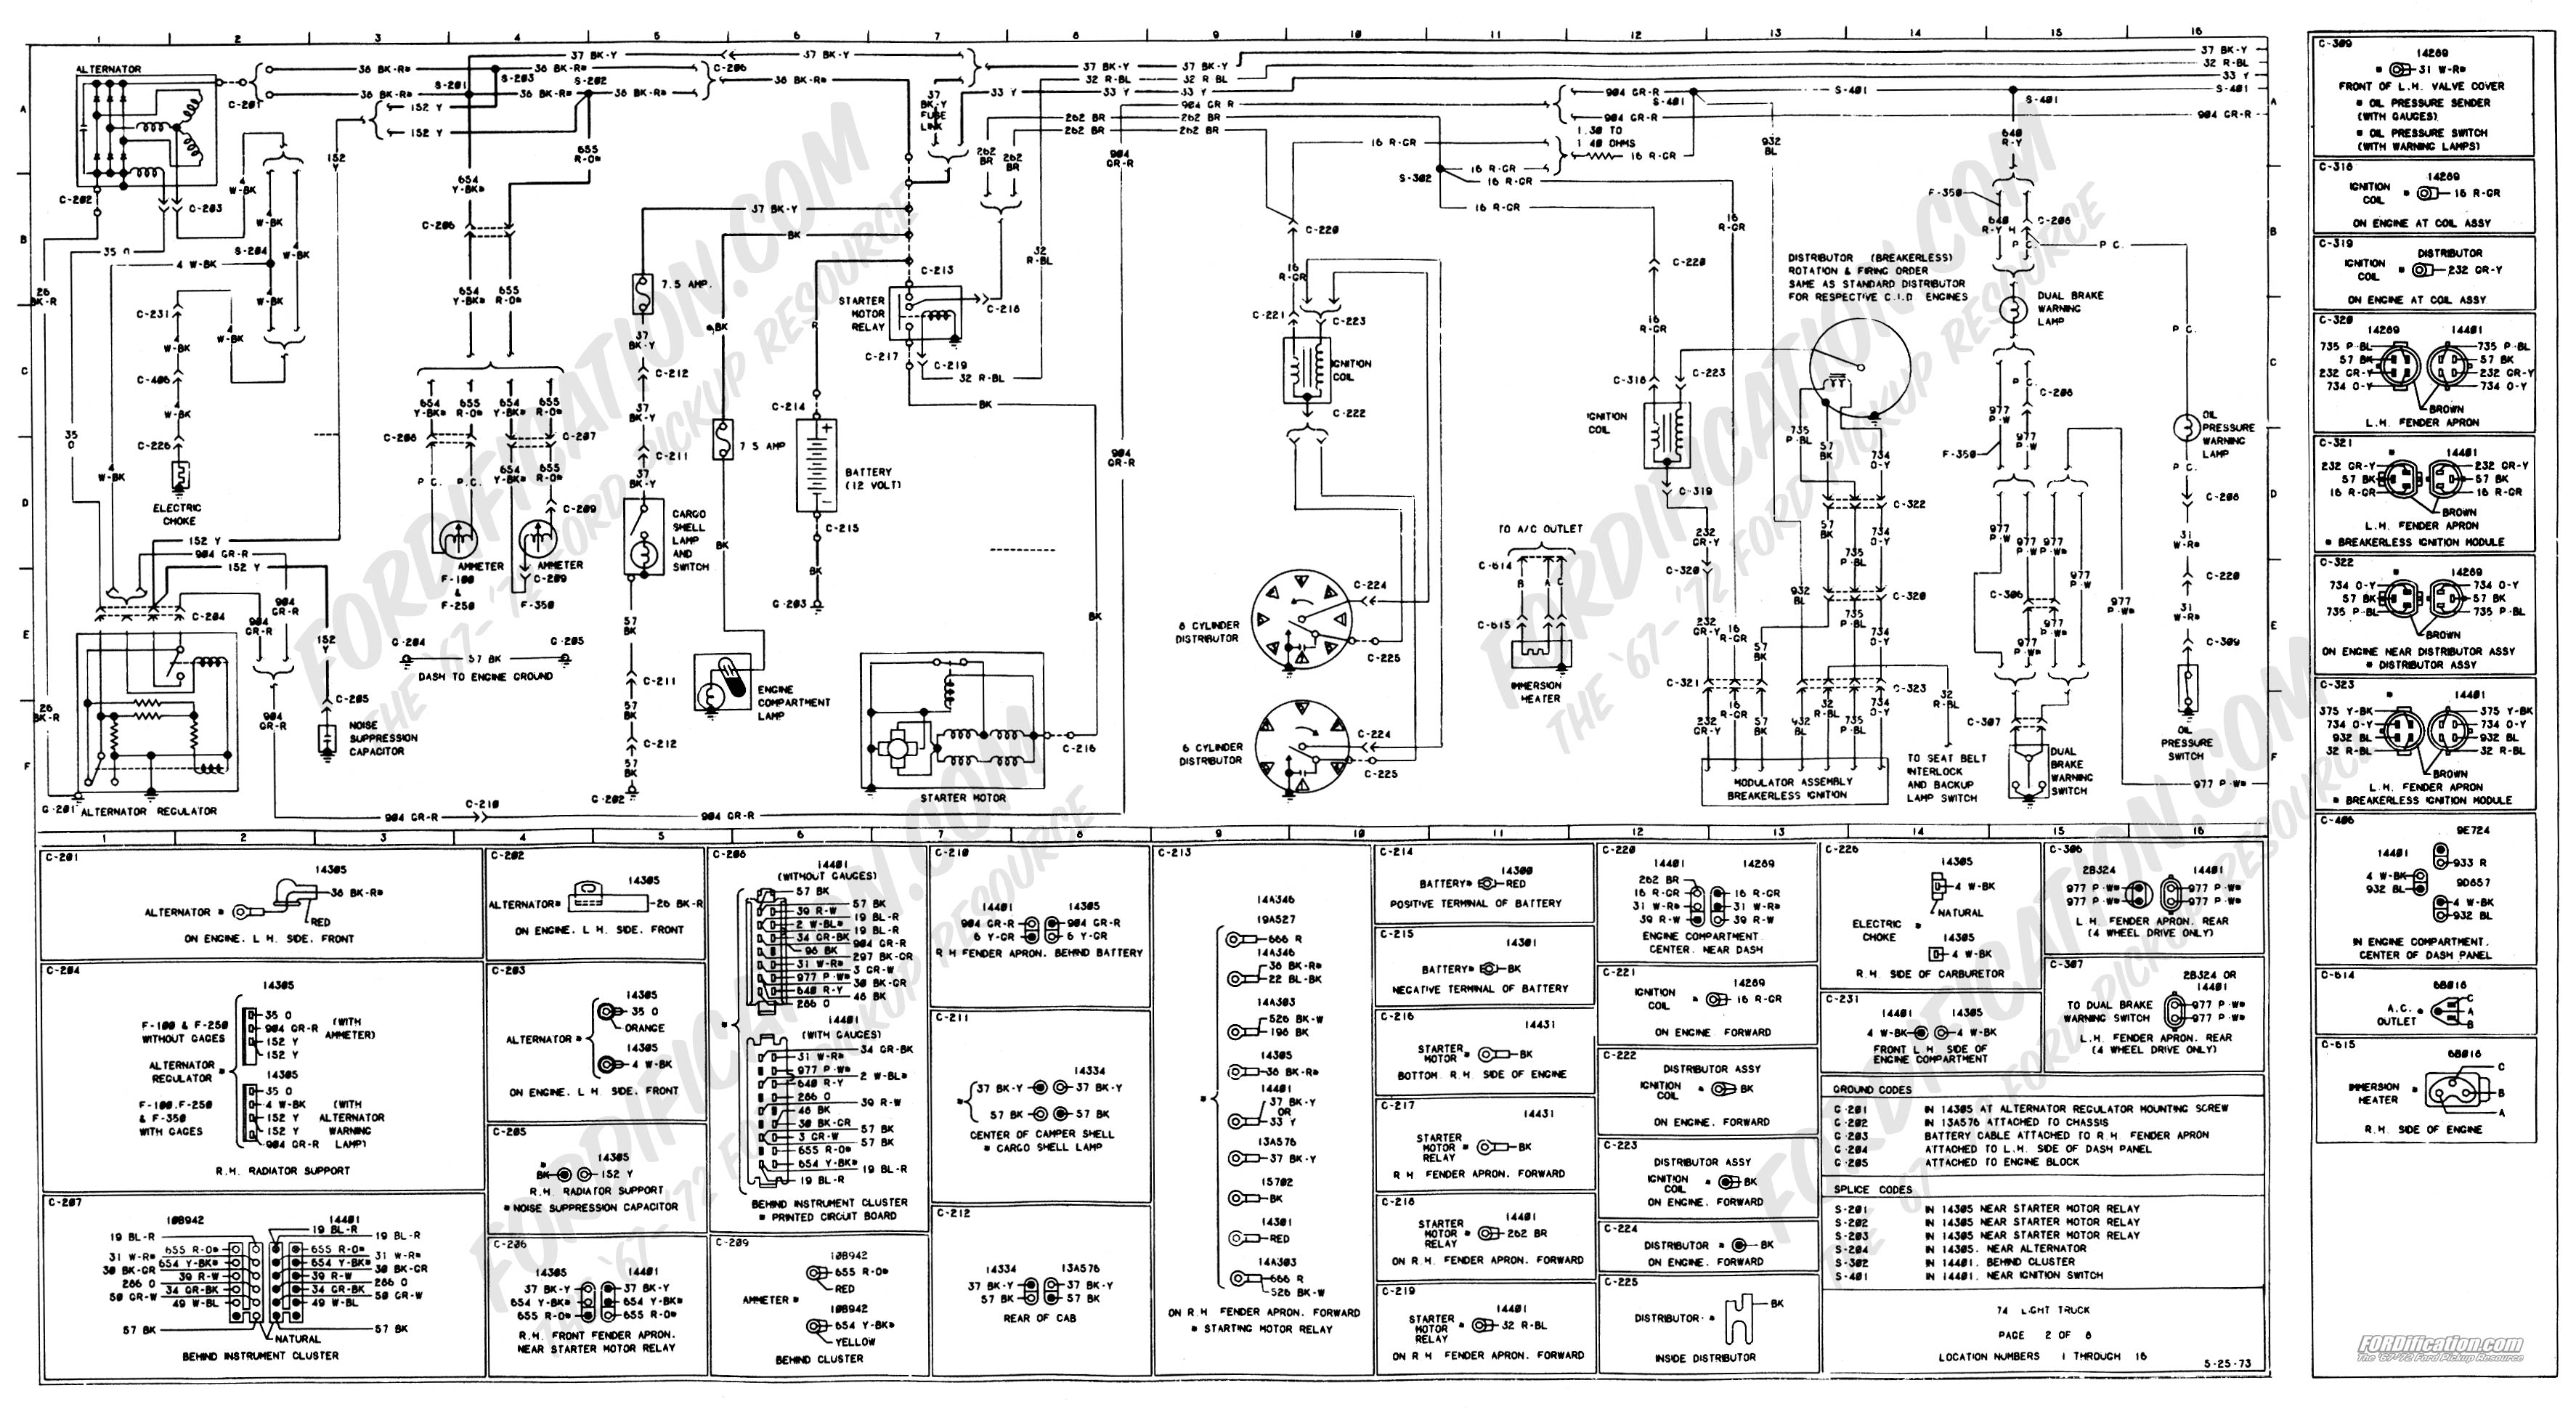 2003 Ford E150 Washer Diagram Wiring Schematic Manual Of Enet Wire 1973 1979 Truck Diagrams Schematics Fordification Net Rh